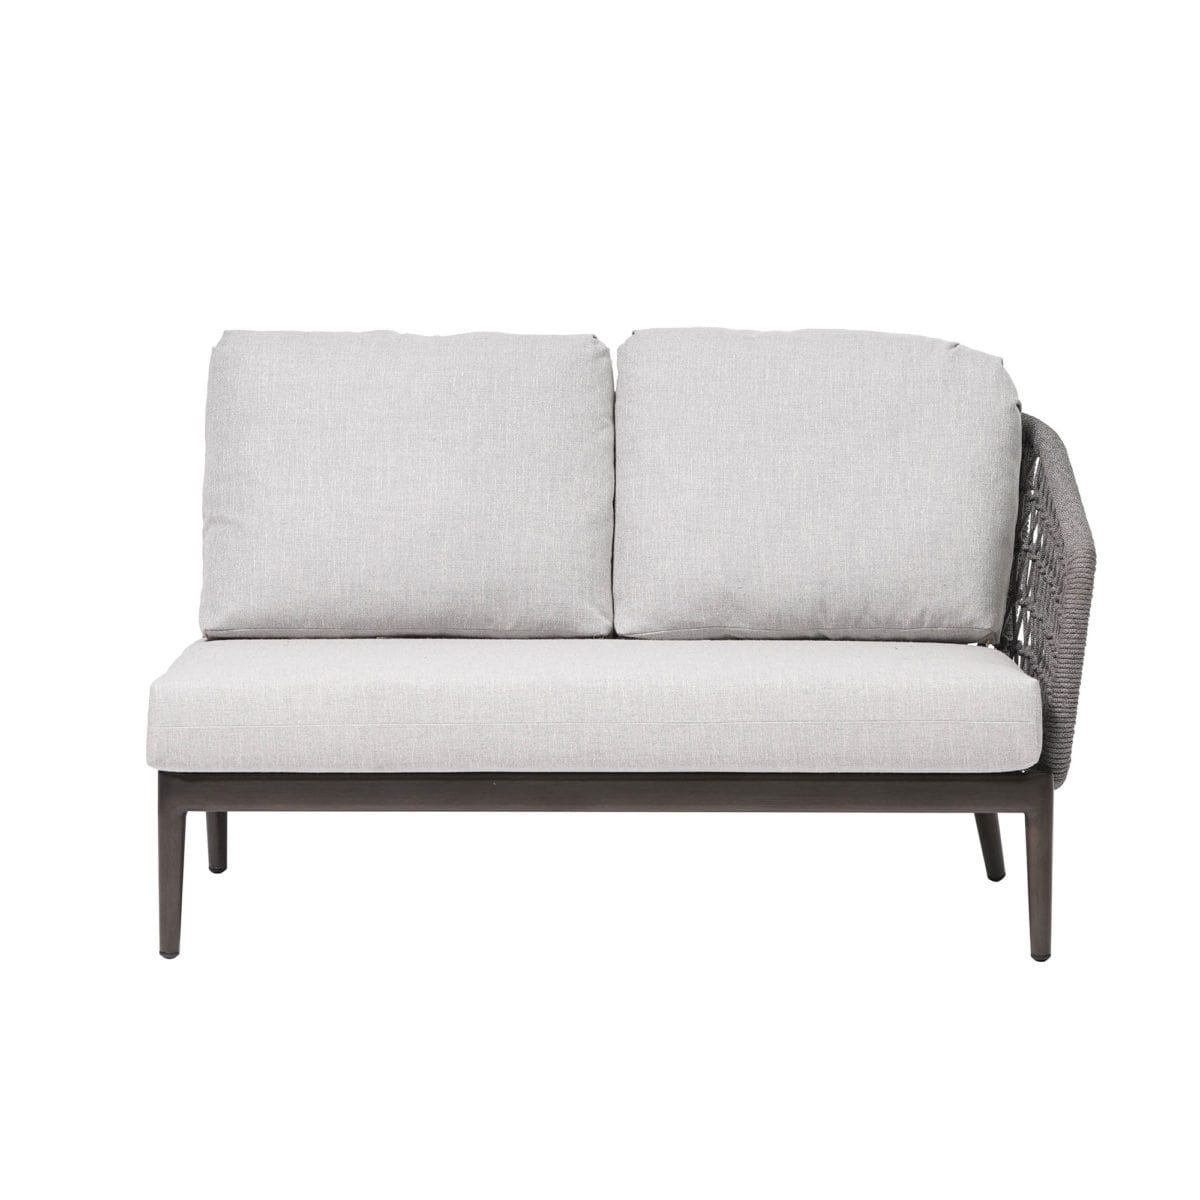 Ratana Sectional Poinciana 2-Seater Right Arm